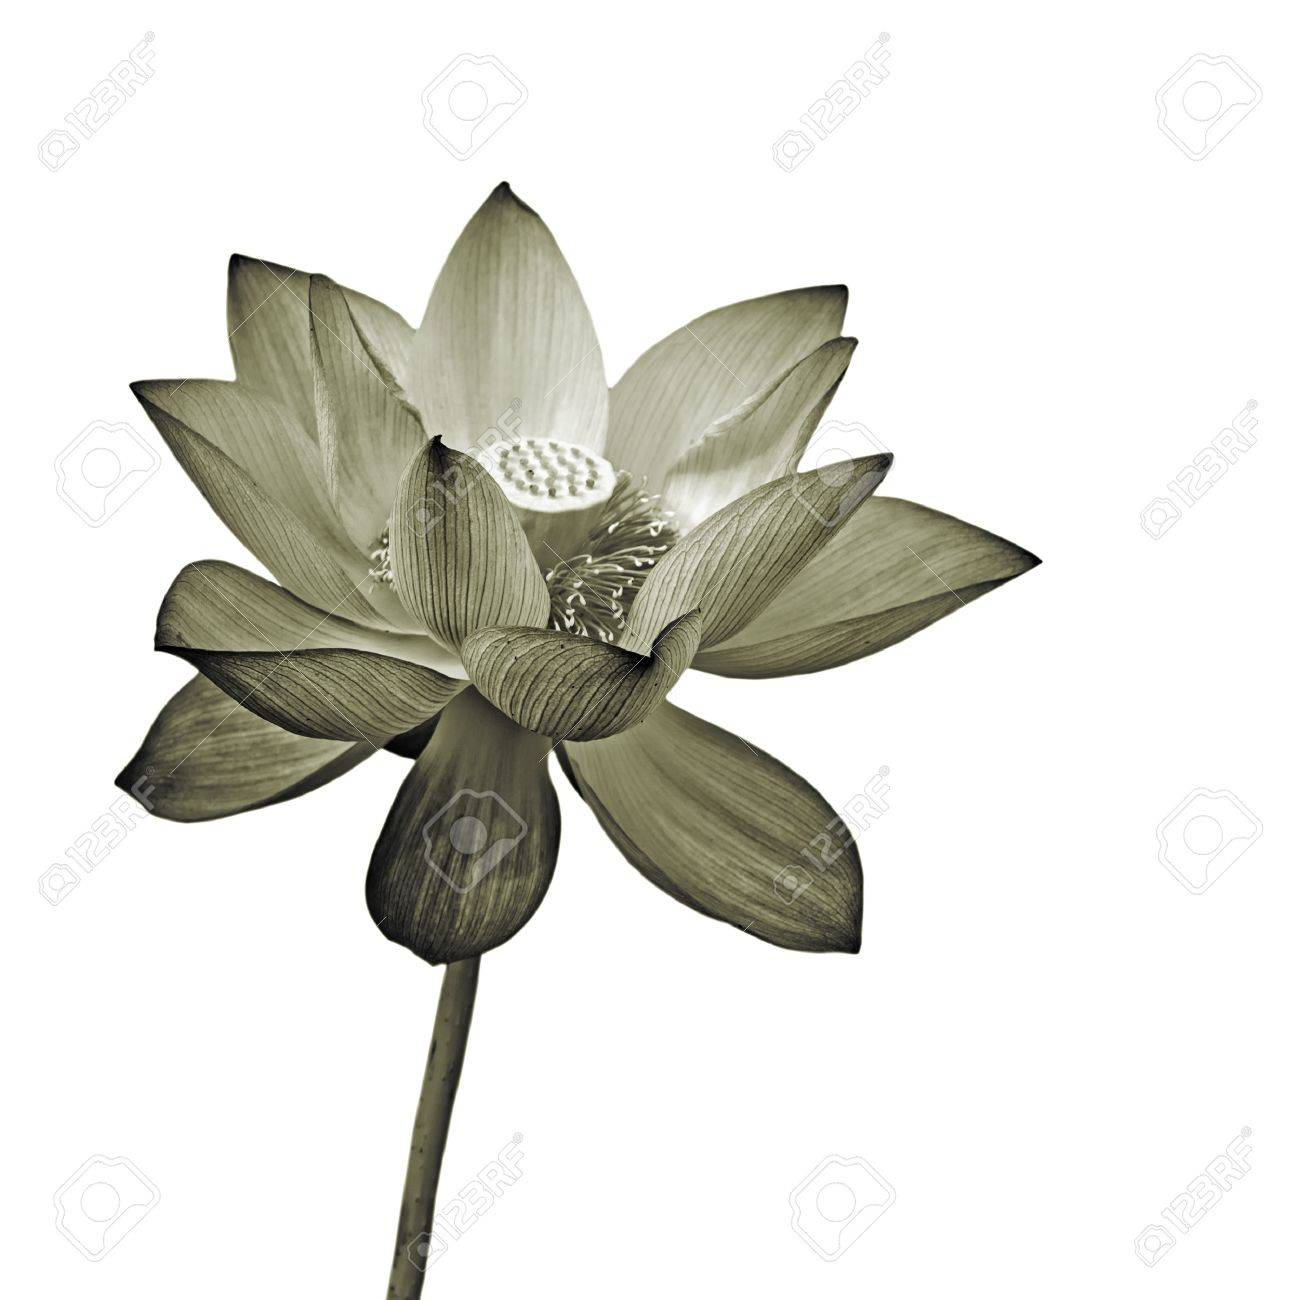 Lotus flower isolated flora object on white background stock photo lotus flower isolated flora object on white background stock photo 9898581 izmirmasajfo